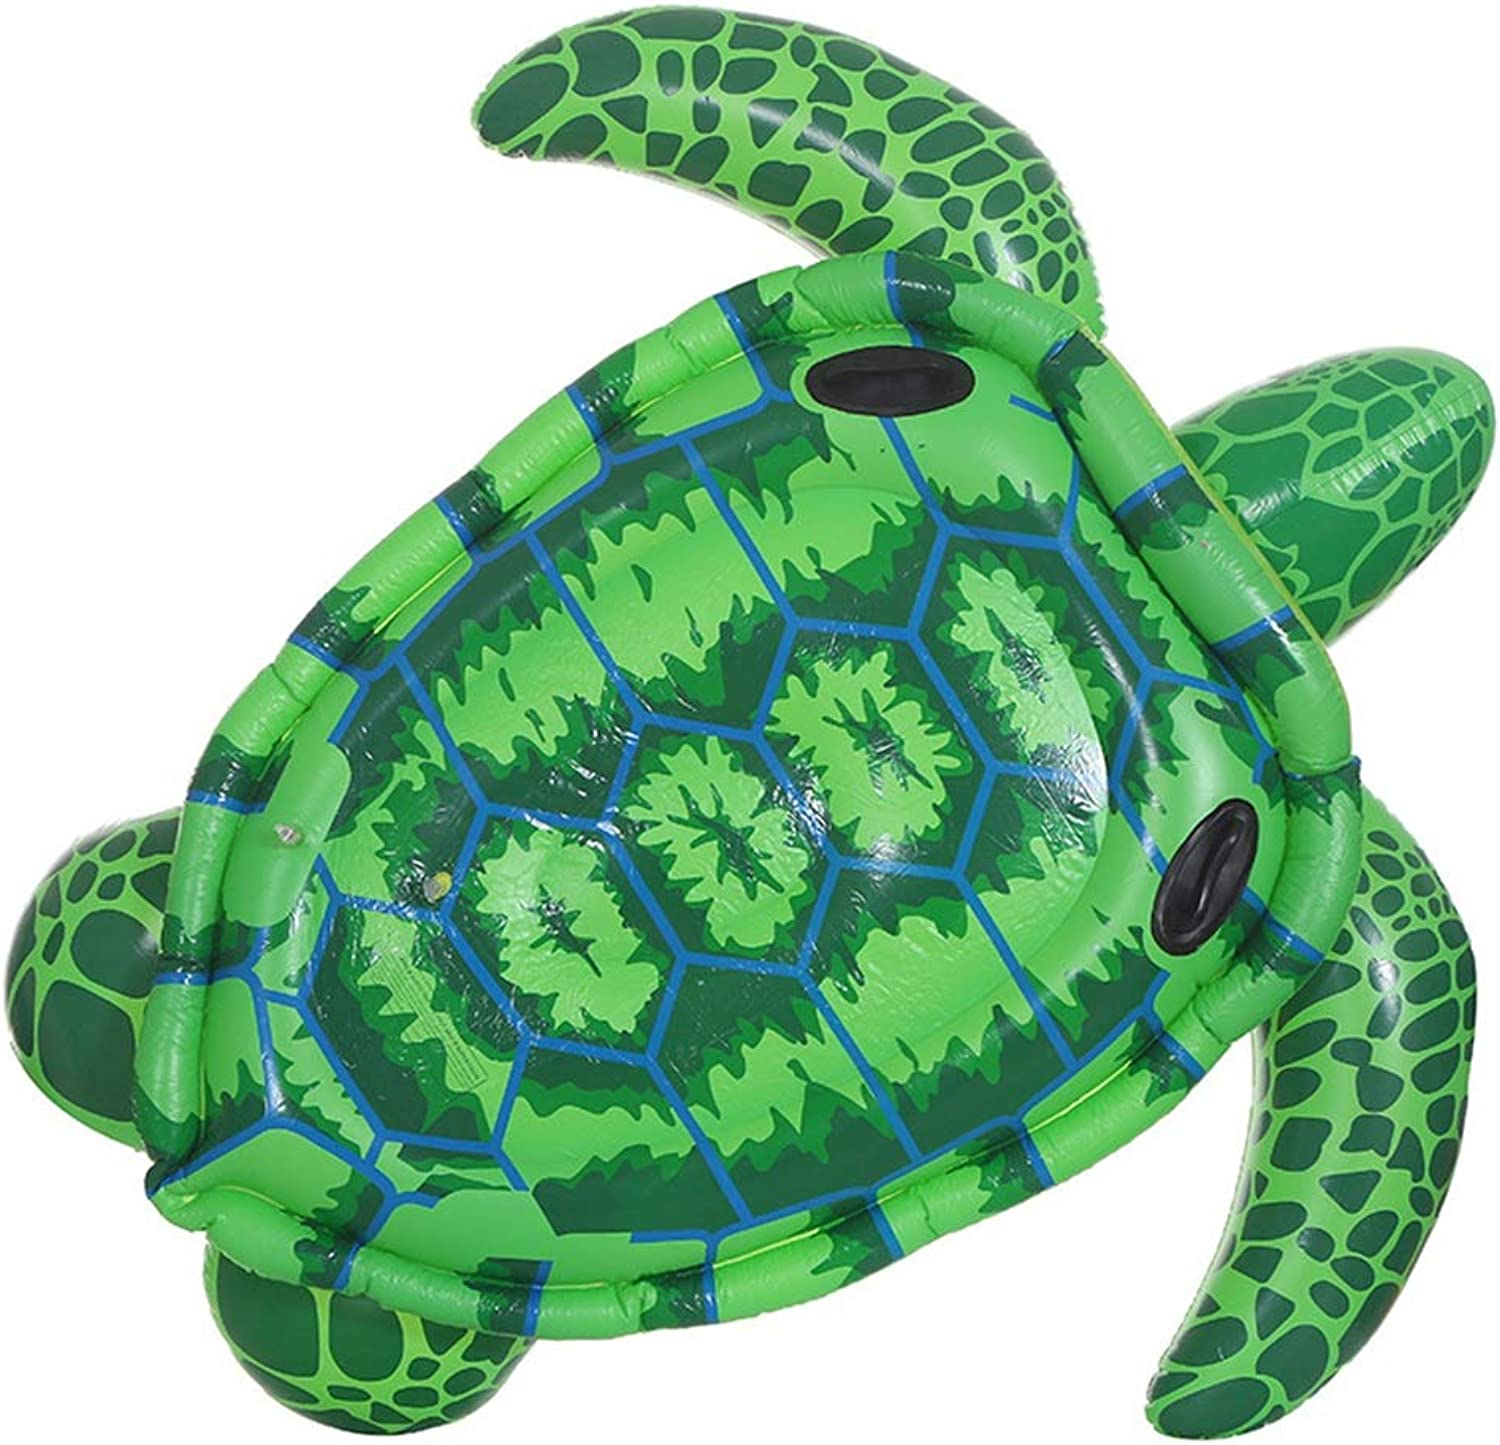 de moda MISHUAI Fila Flotante Inflable Tortuga Tortuga Tortuga Marina Inflable Ride-On Fun Pool Swim Party Juguete for Niños Adultos Fila Flotante Inflable Piscina de Aire y inflables (Color   verde, tamaño   Free Talla)  conveniente